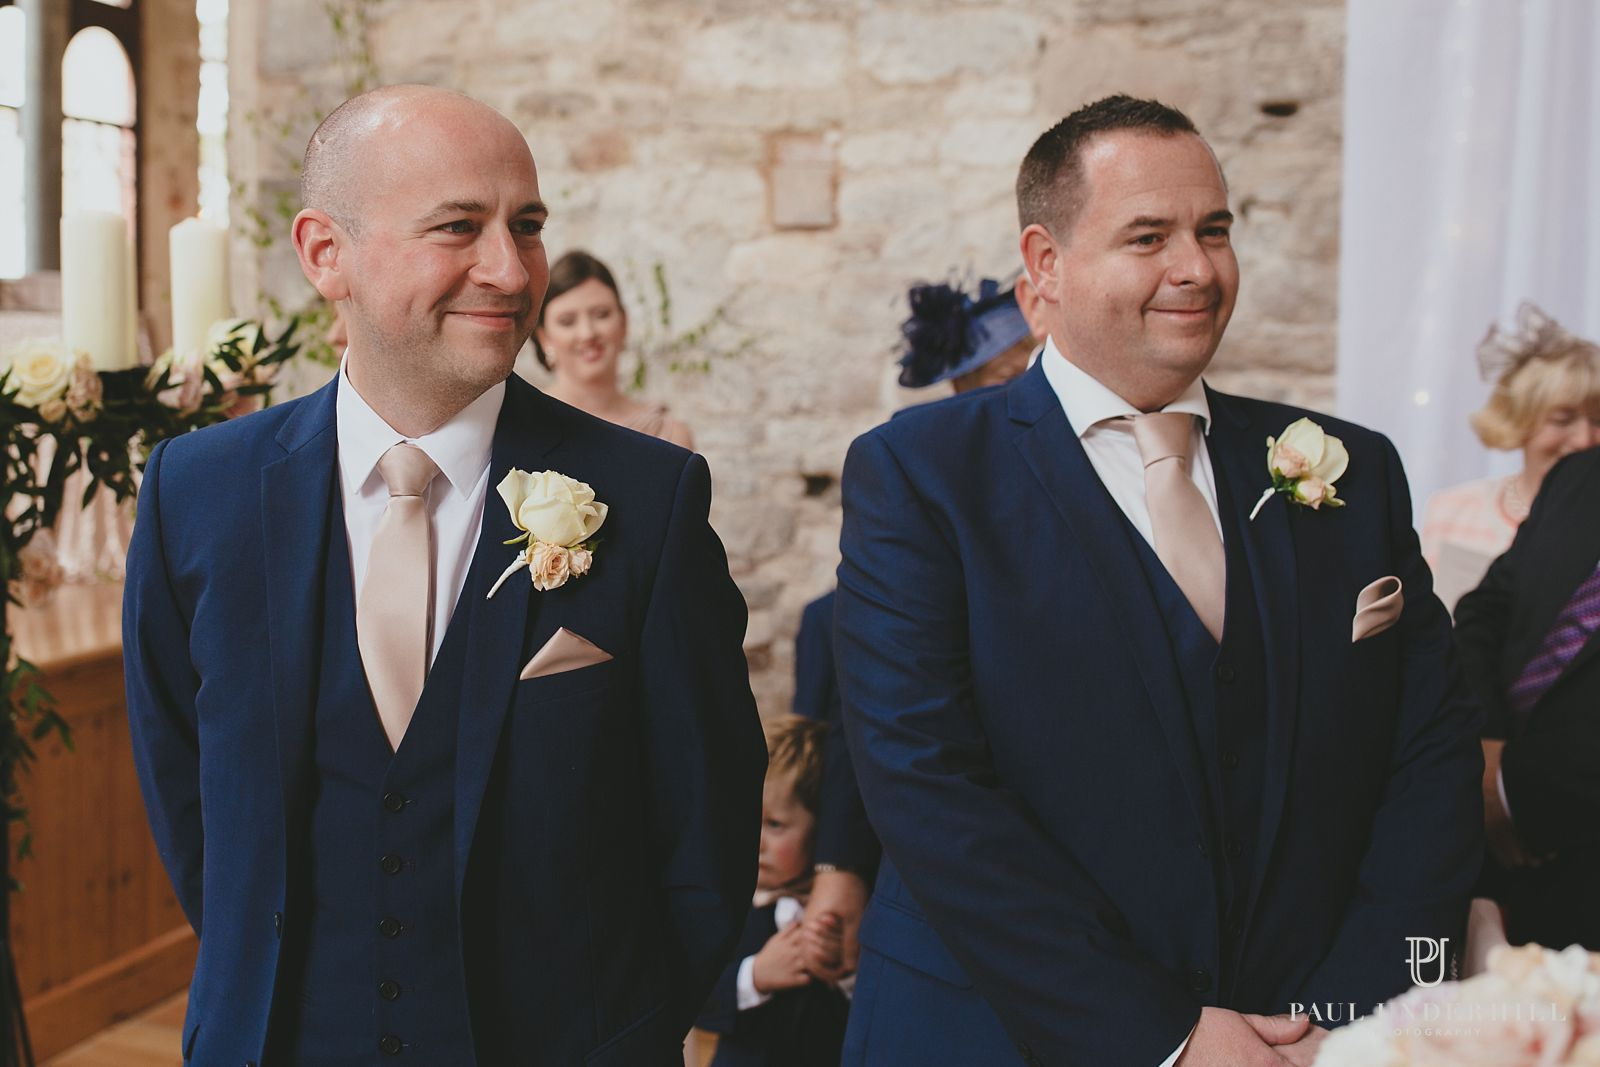 Groom and bestman Lulworth Castle